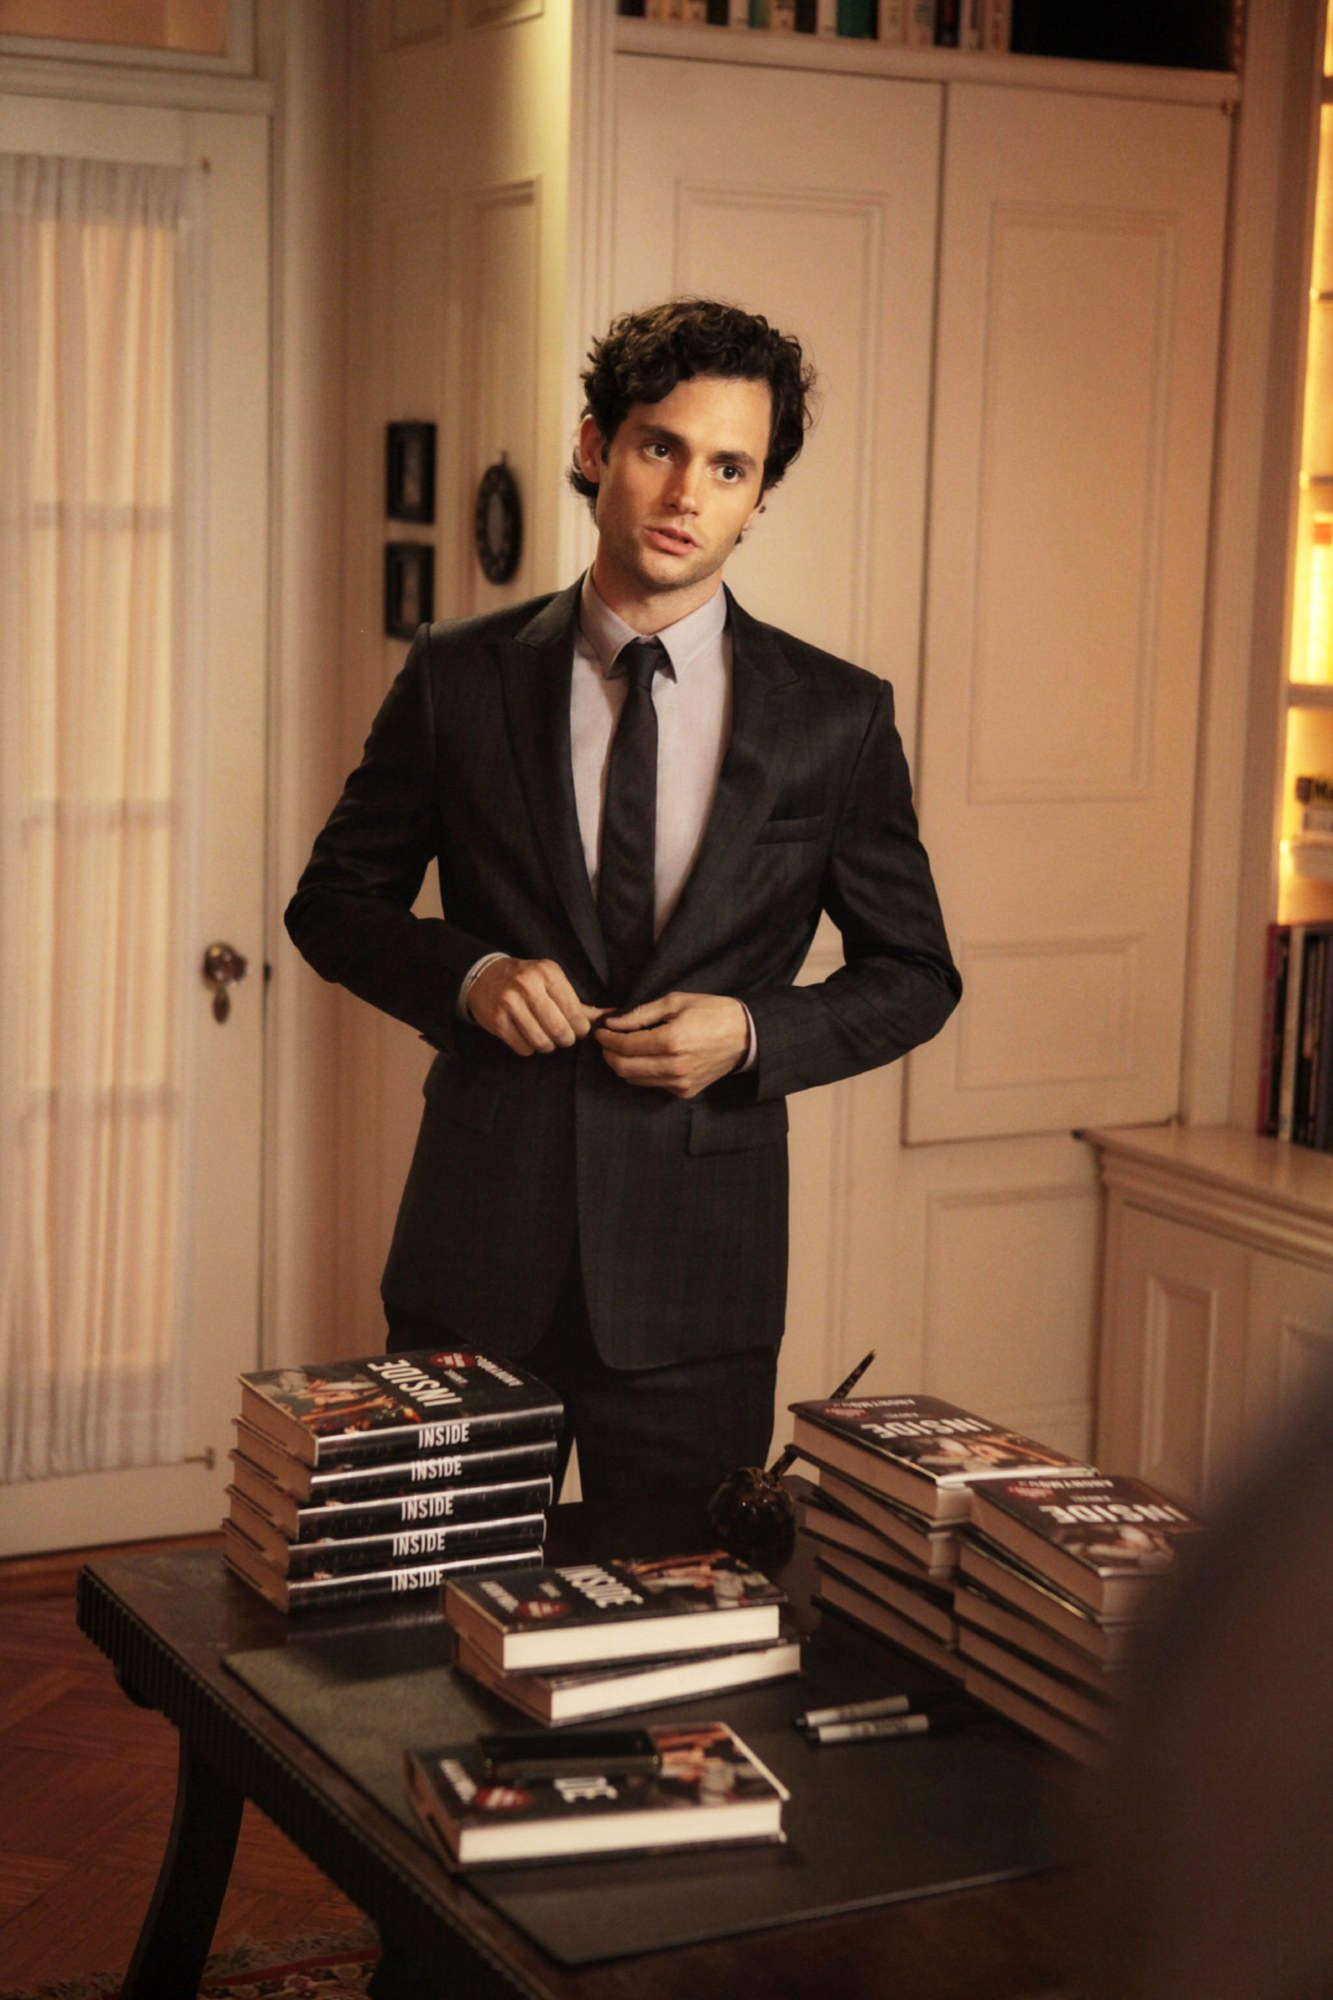 Dan Humphrey talking while buttoning up his suit